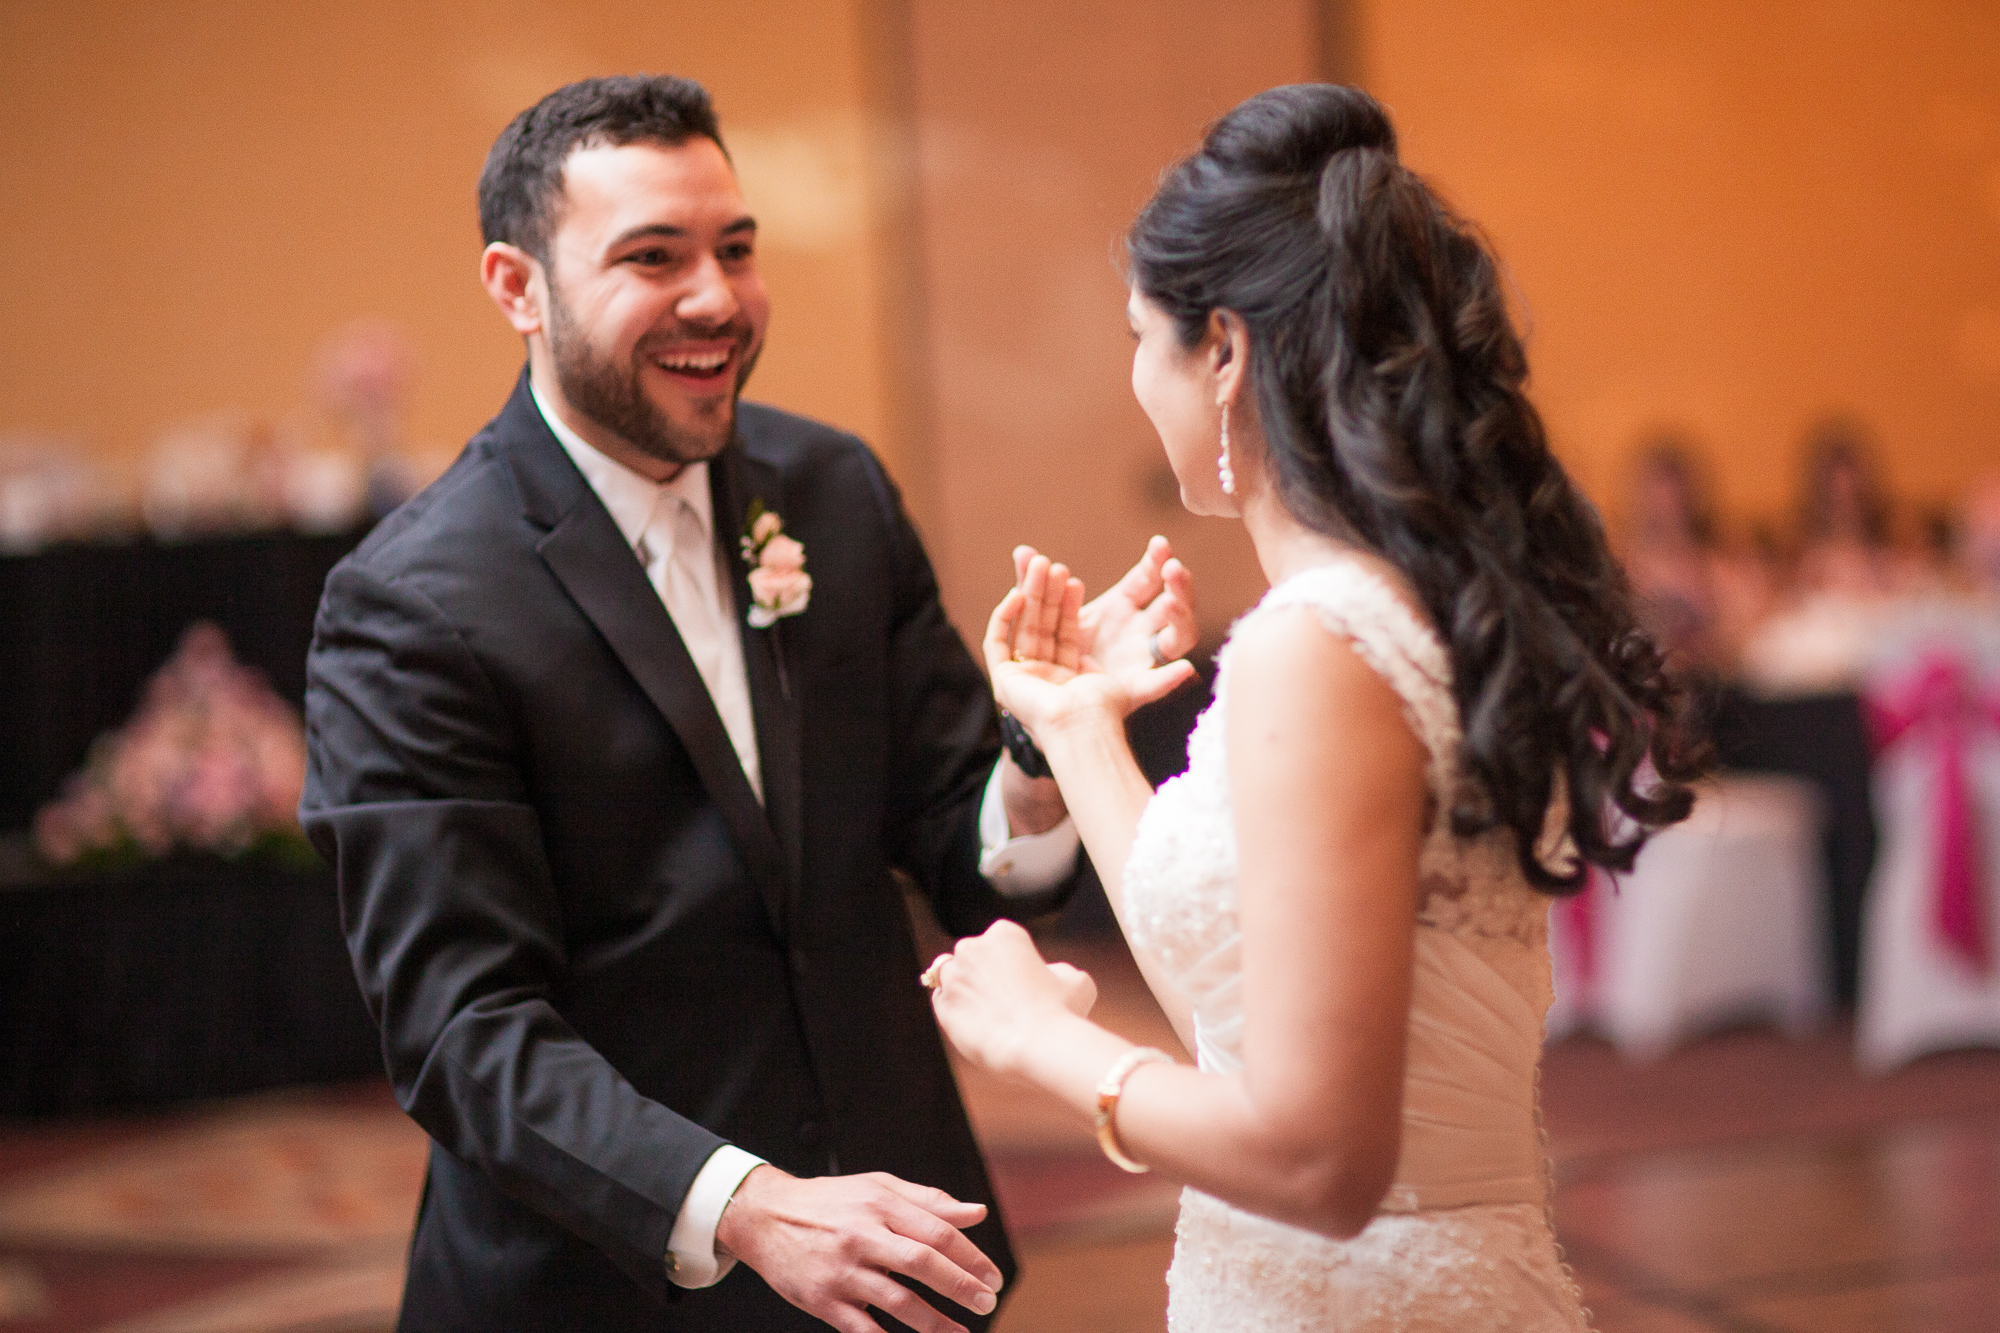 A fun and exciting first dance by Isaac & Glory